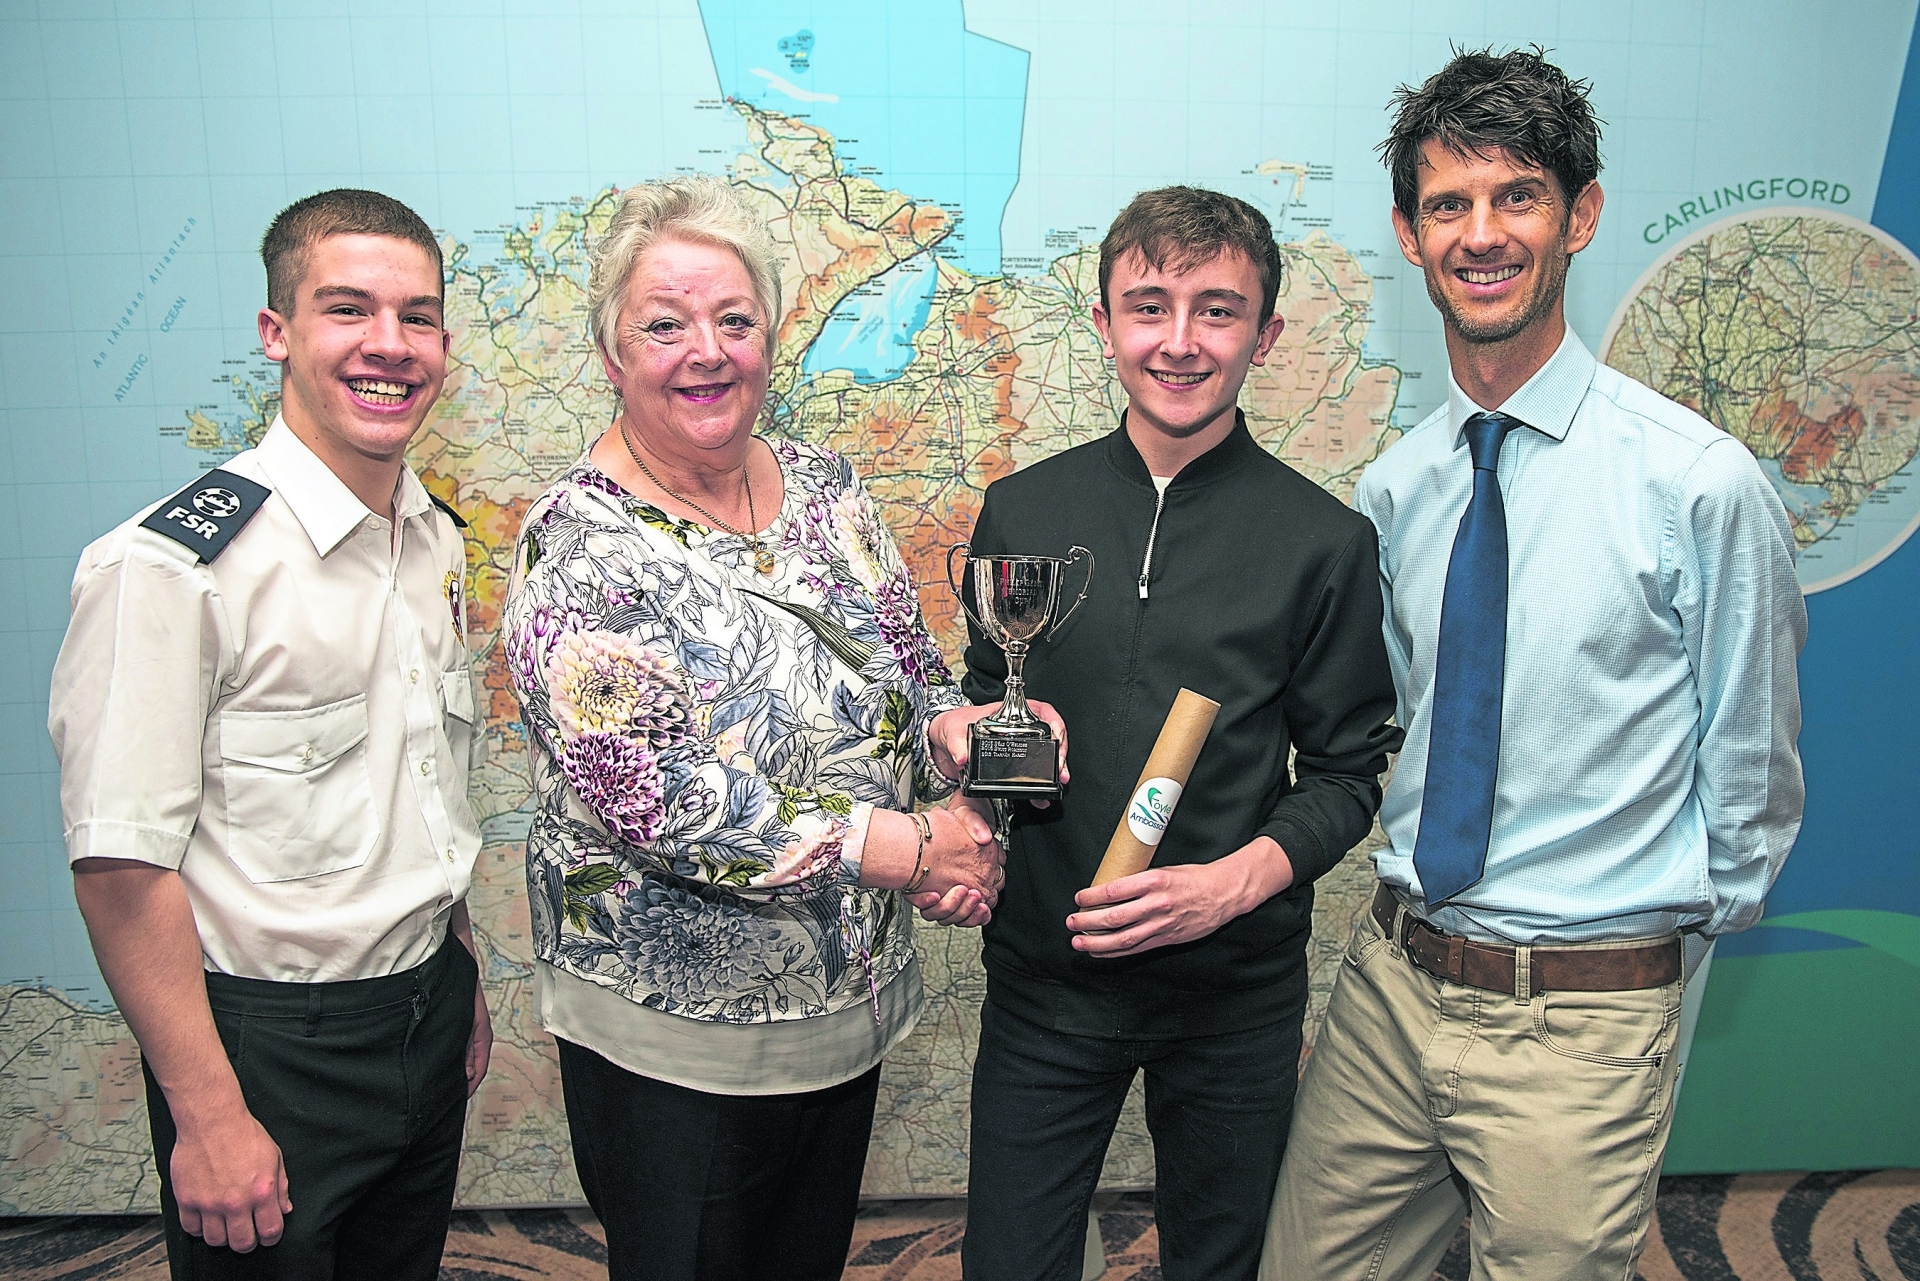 Winner Dylan Sharkey (second from right) with Tiarnan Harkin, Marion Gent and Allan Bogle